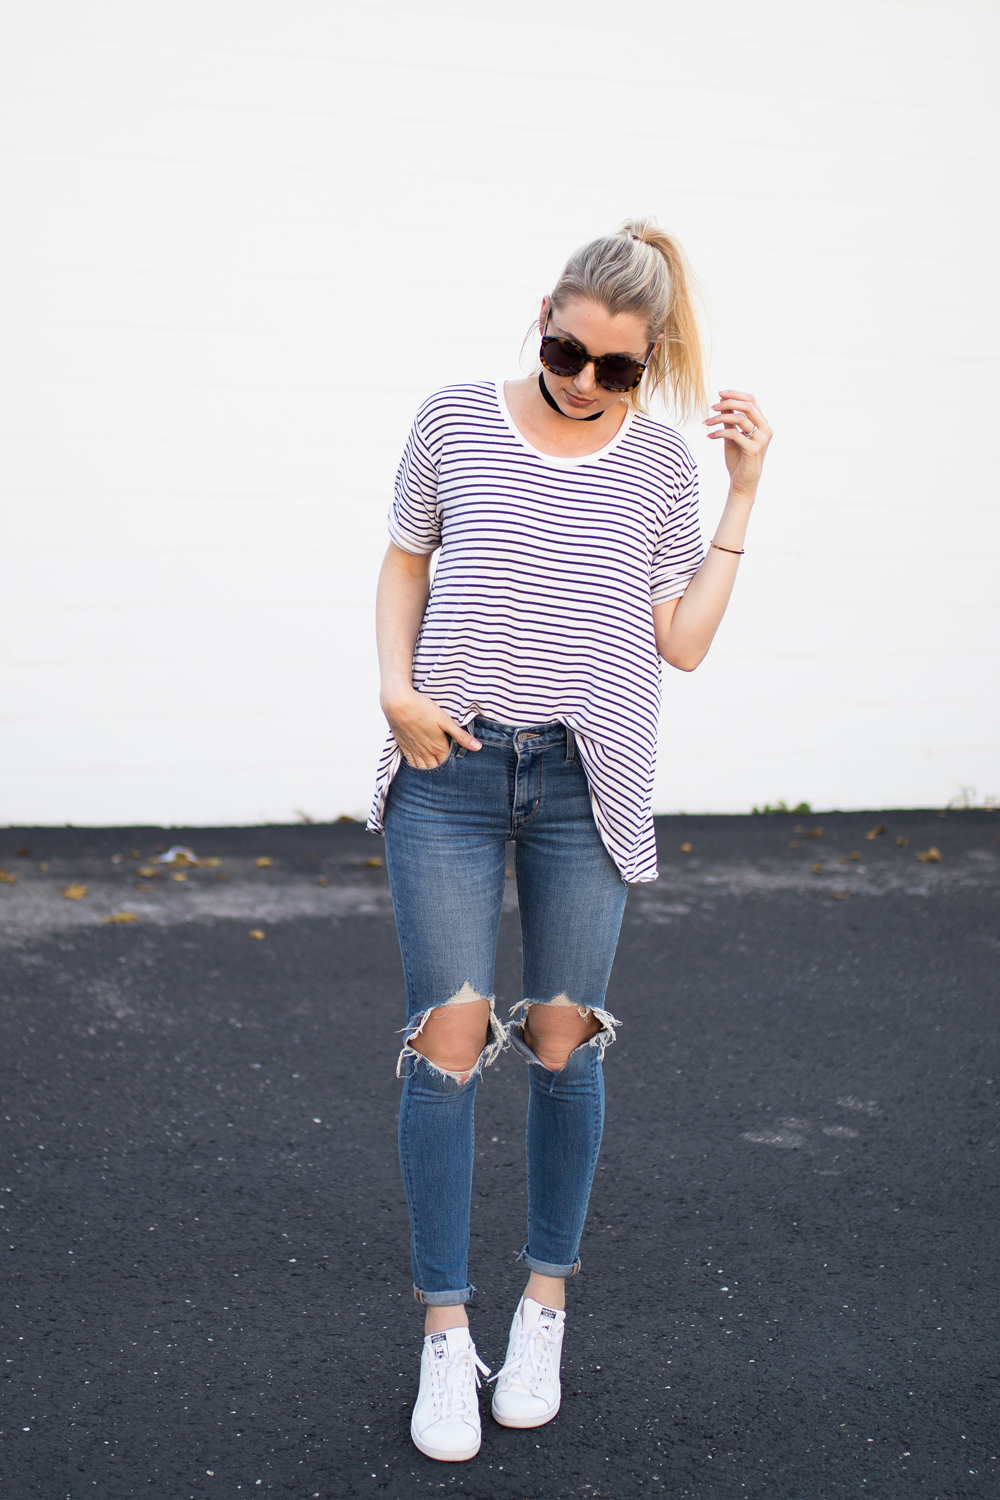 Casual jeans & tee outfit